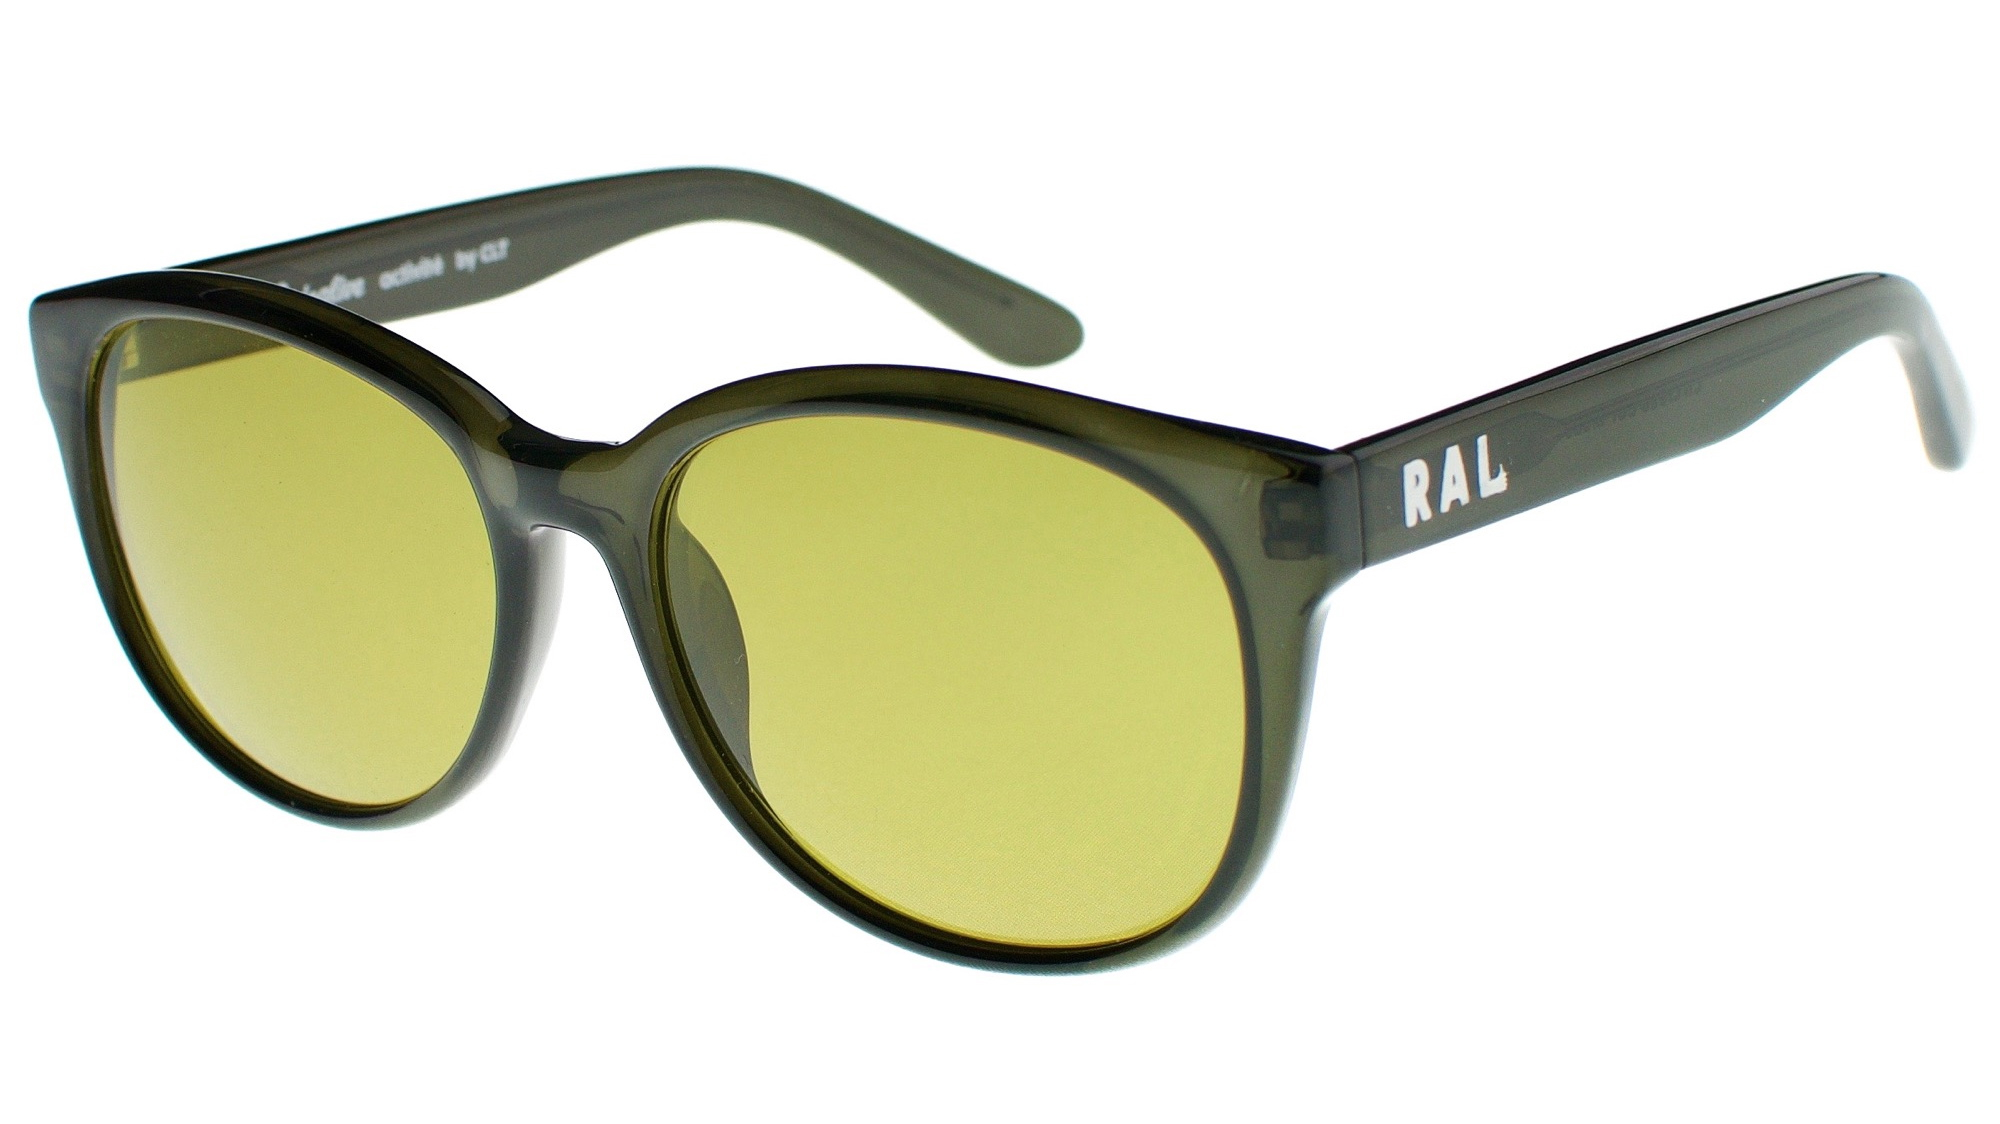 ral_eyewear_activity_02_16x9